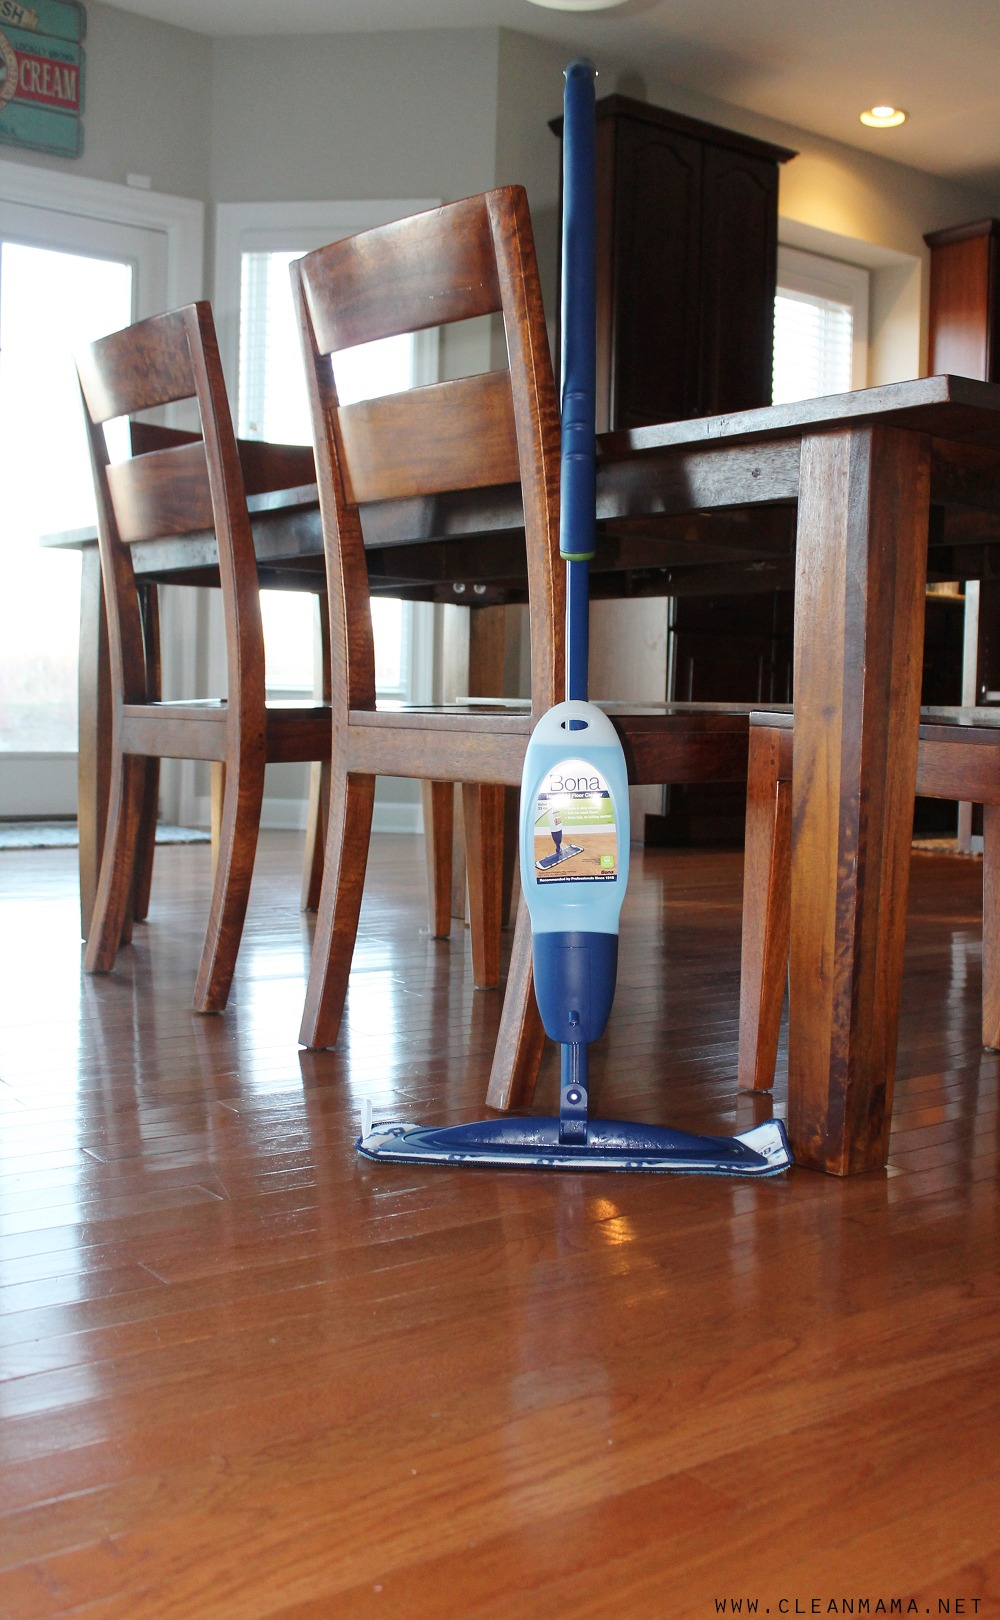 Sparkling Clean Floors from Bona via Clean Mama